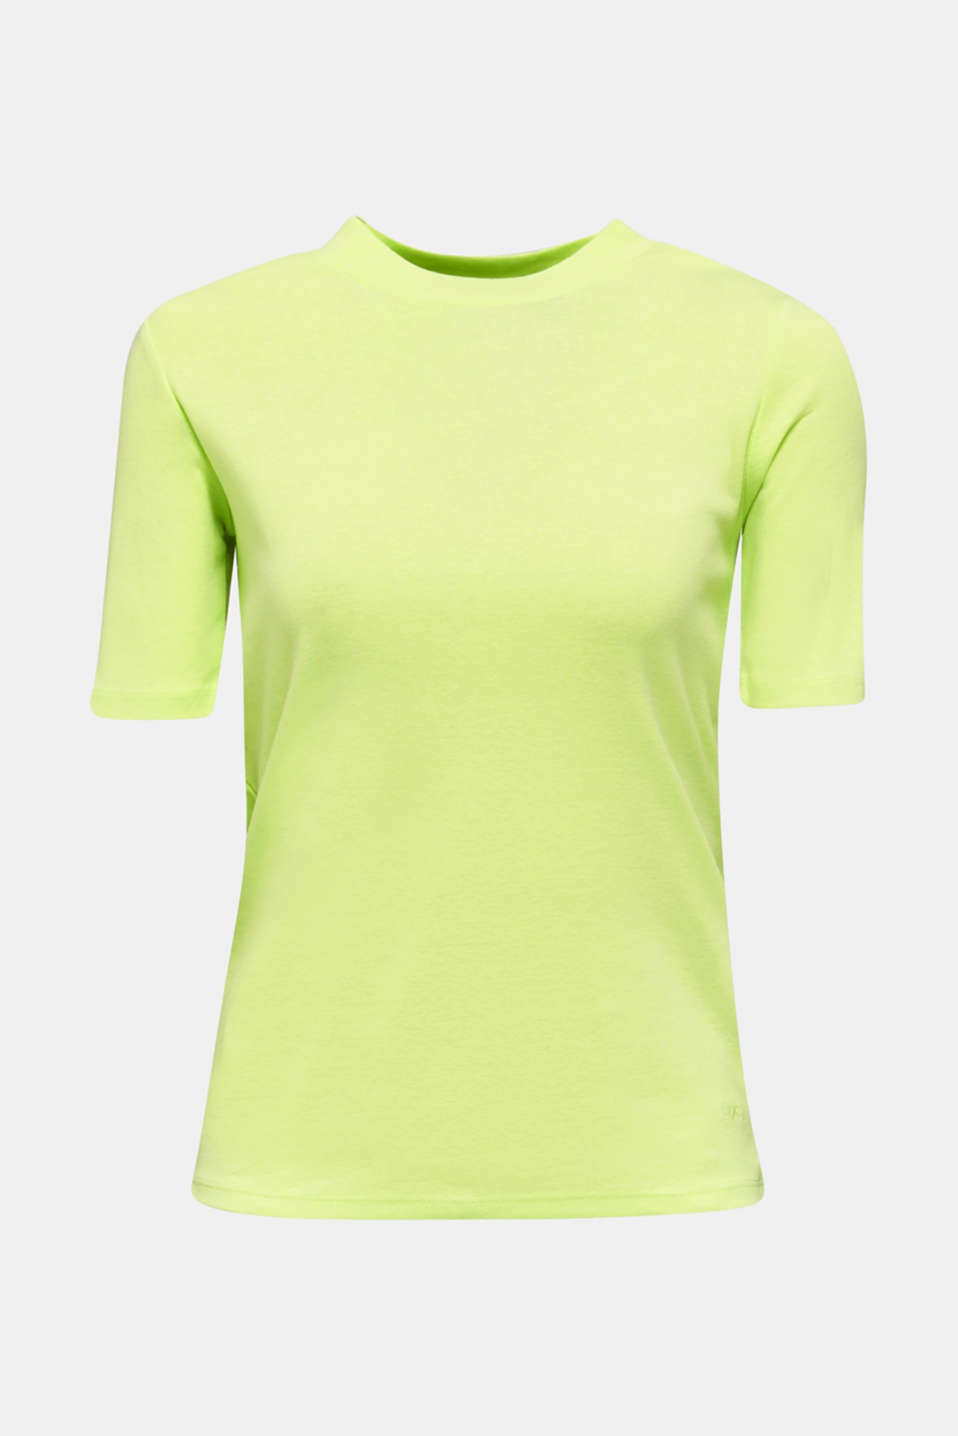 NEON top with a band collar, 100% cotton, LIME YELLOW 4, detail image number 6